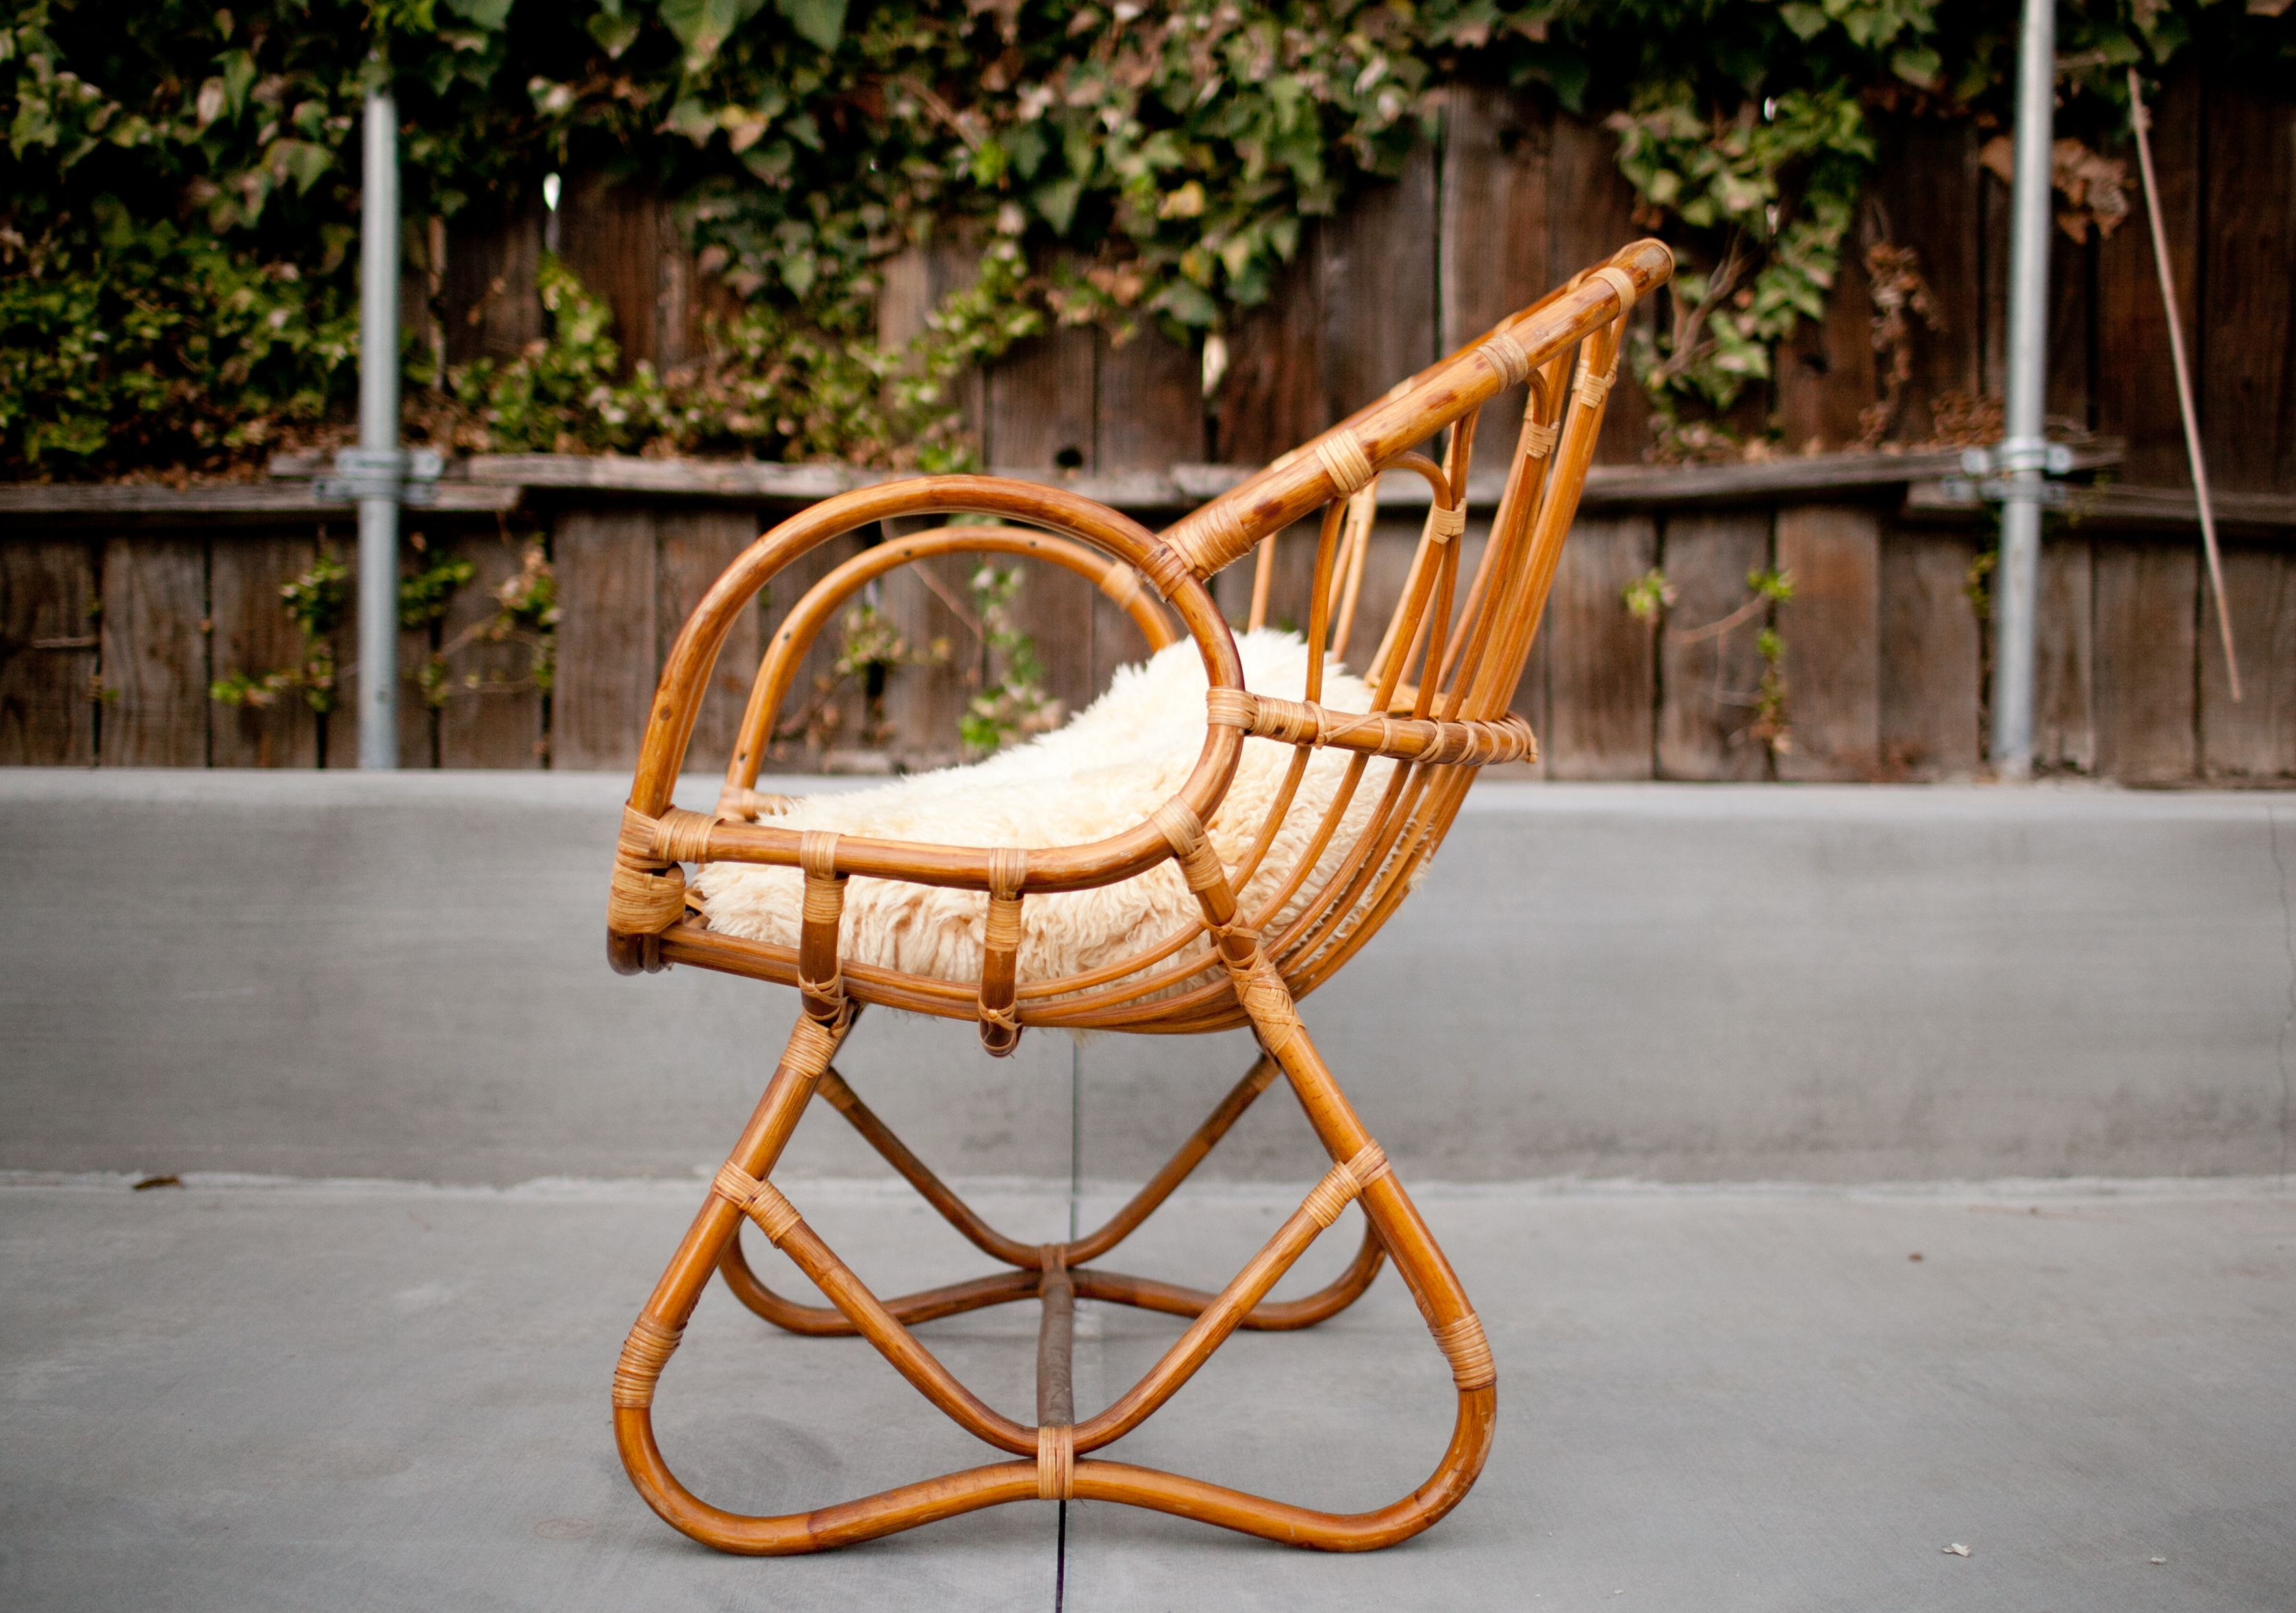 Vintage Rattan Chair From Civicthrift Chair Vintage Furniture